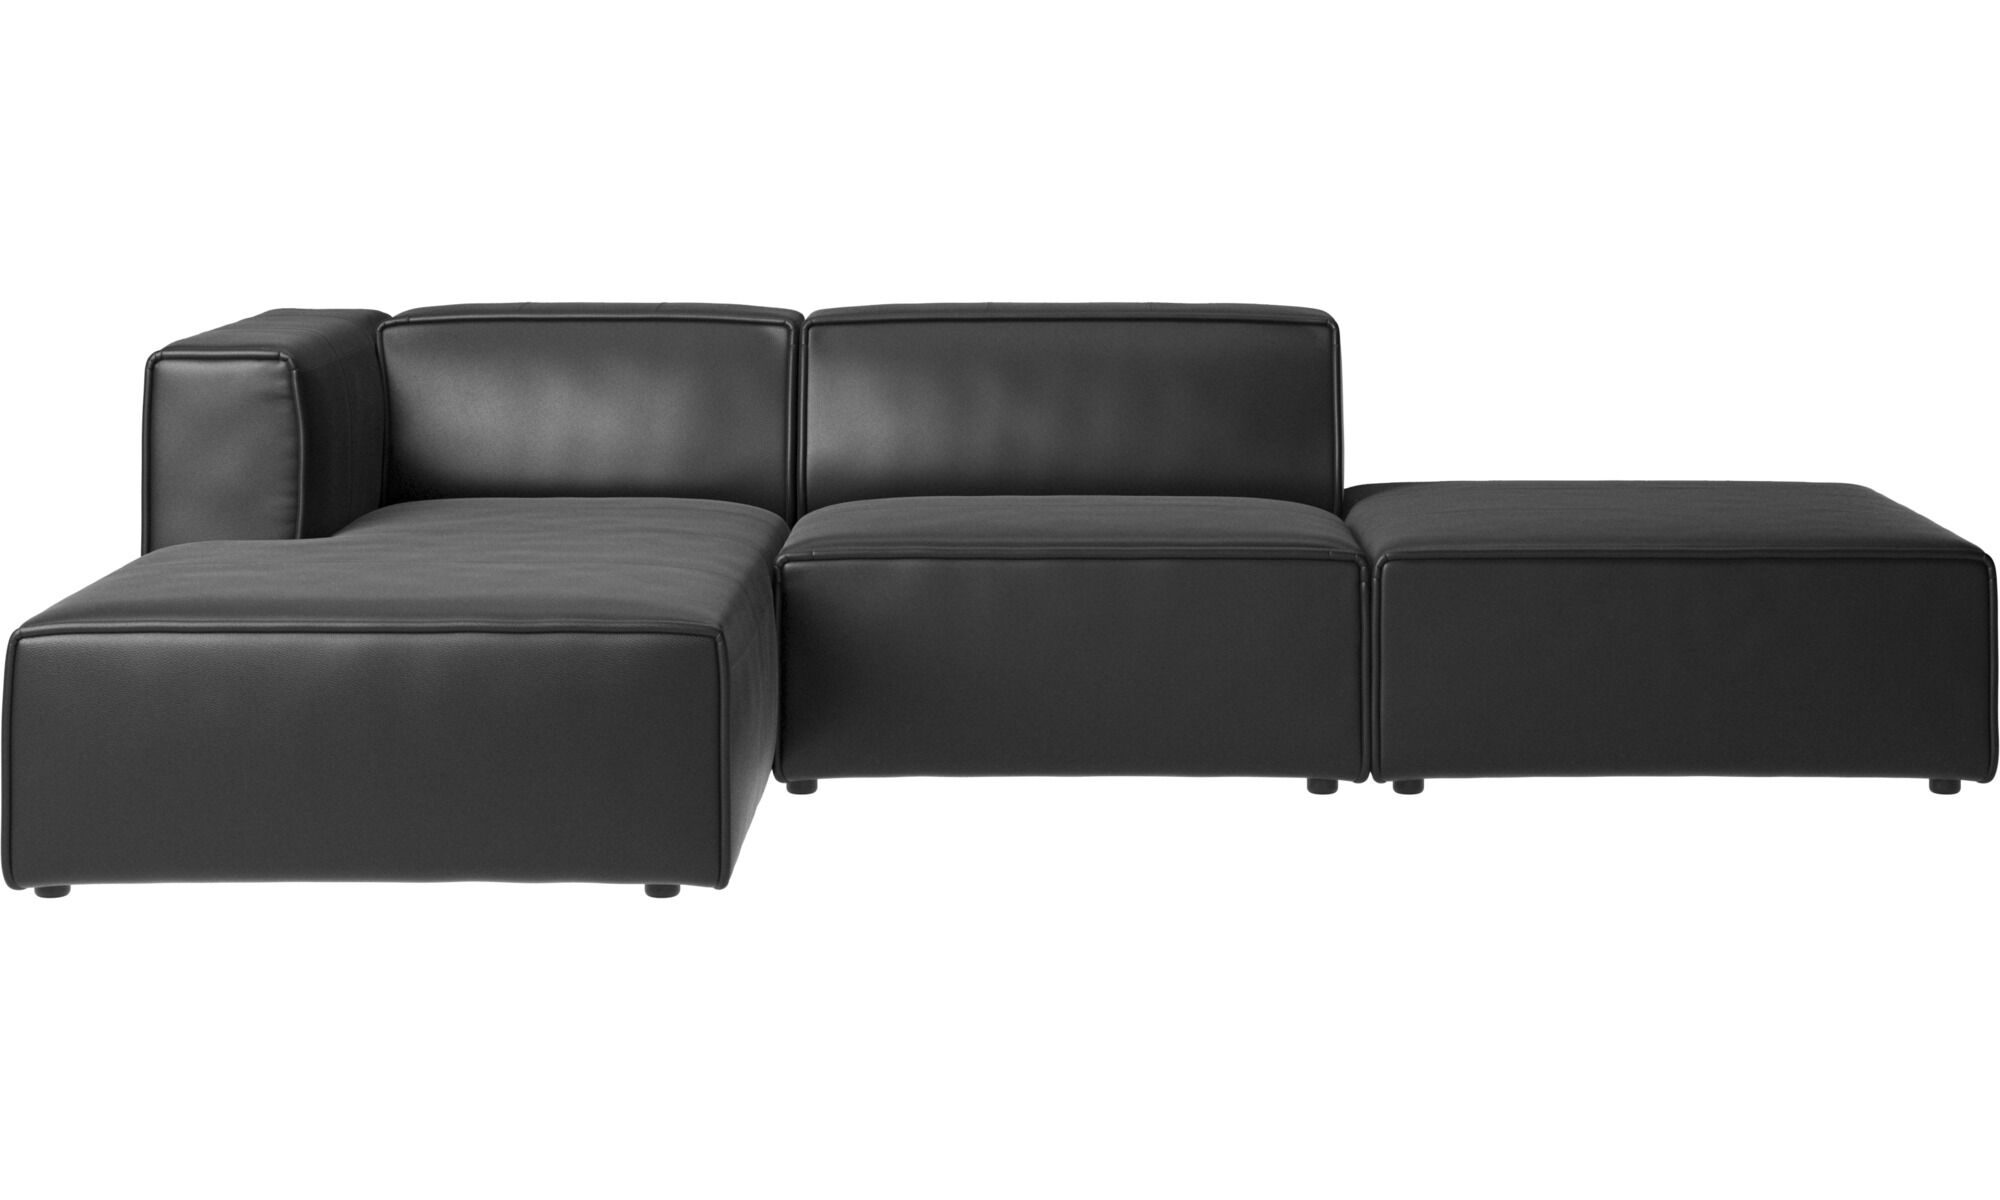 Modular sofas - Carmo sofa with lounging and resting unit - Black - Leather  sc 1 st  BoConcept : black leather chaise longue - Sectionals, Sofas & Couches